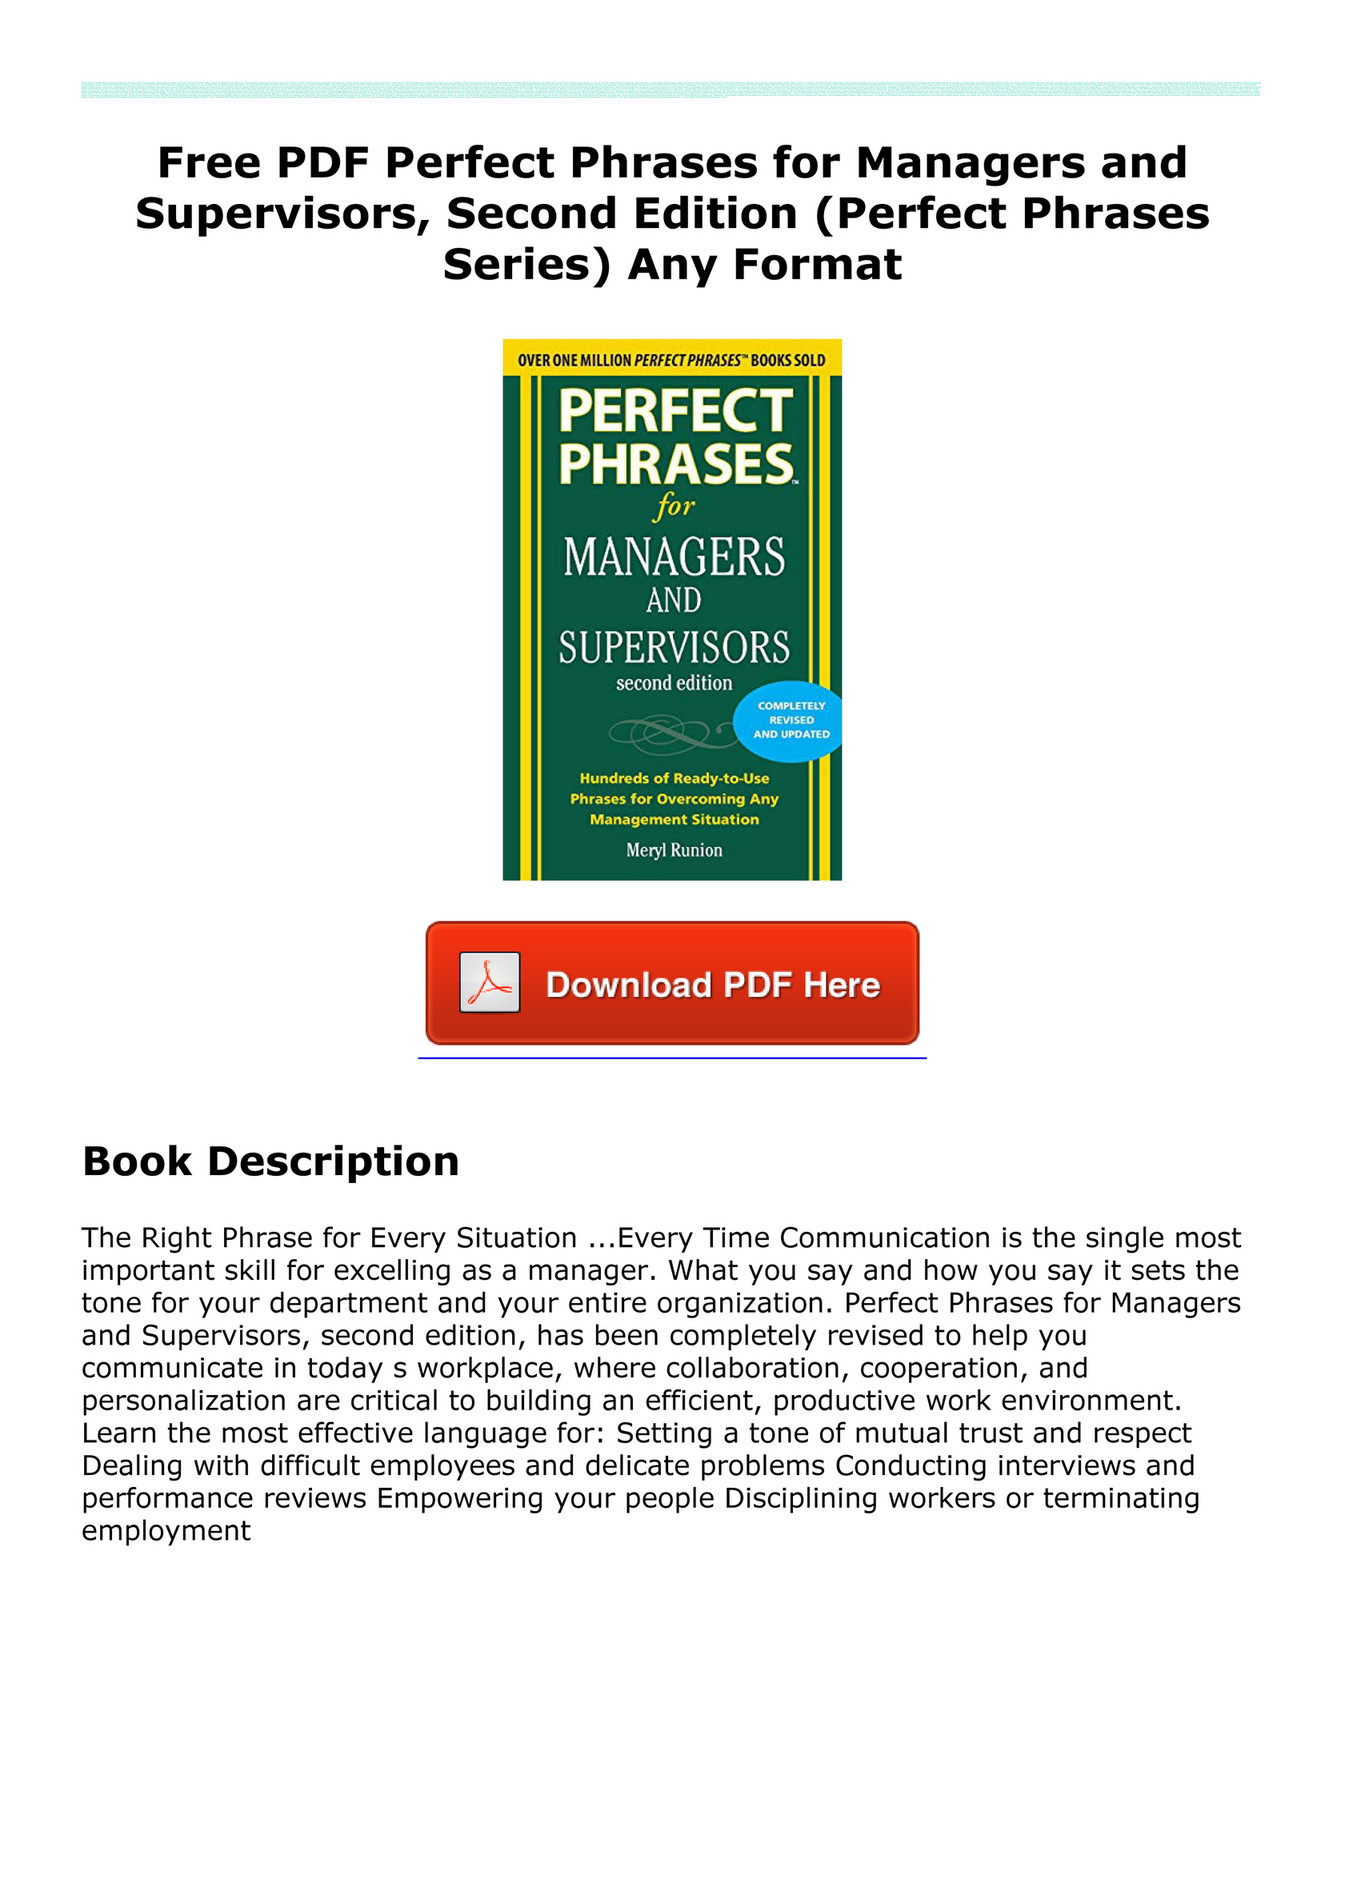 Pefyalogna Free Pdf Perfect Phrases For Managers And Supervisors